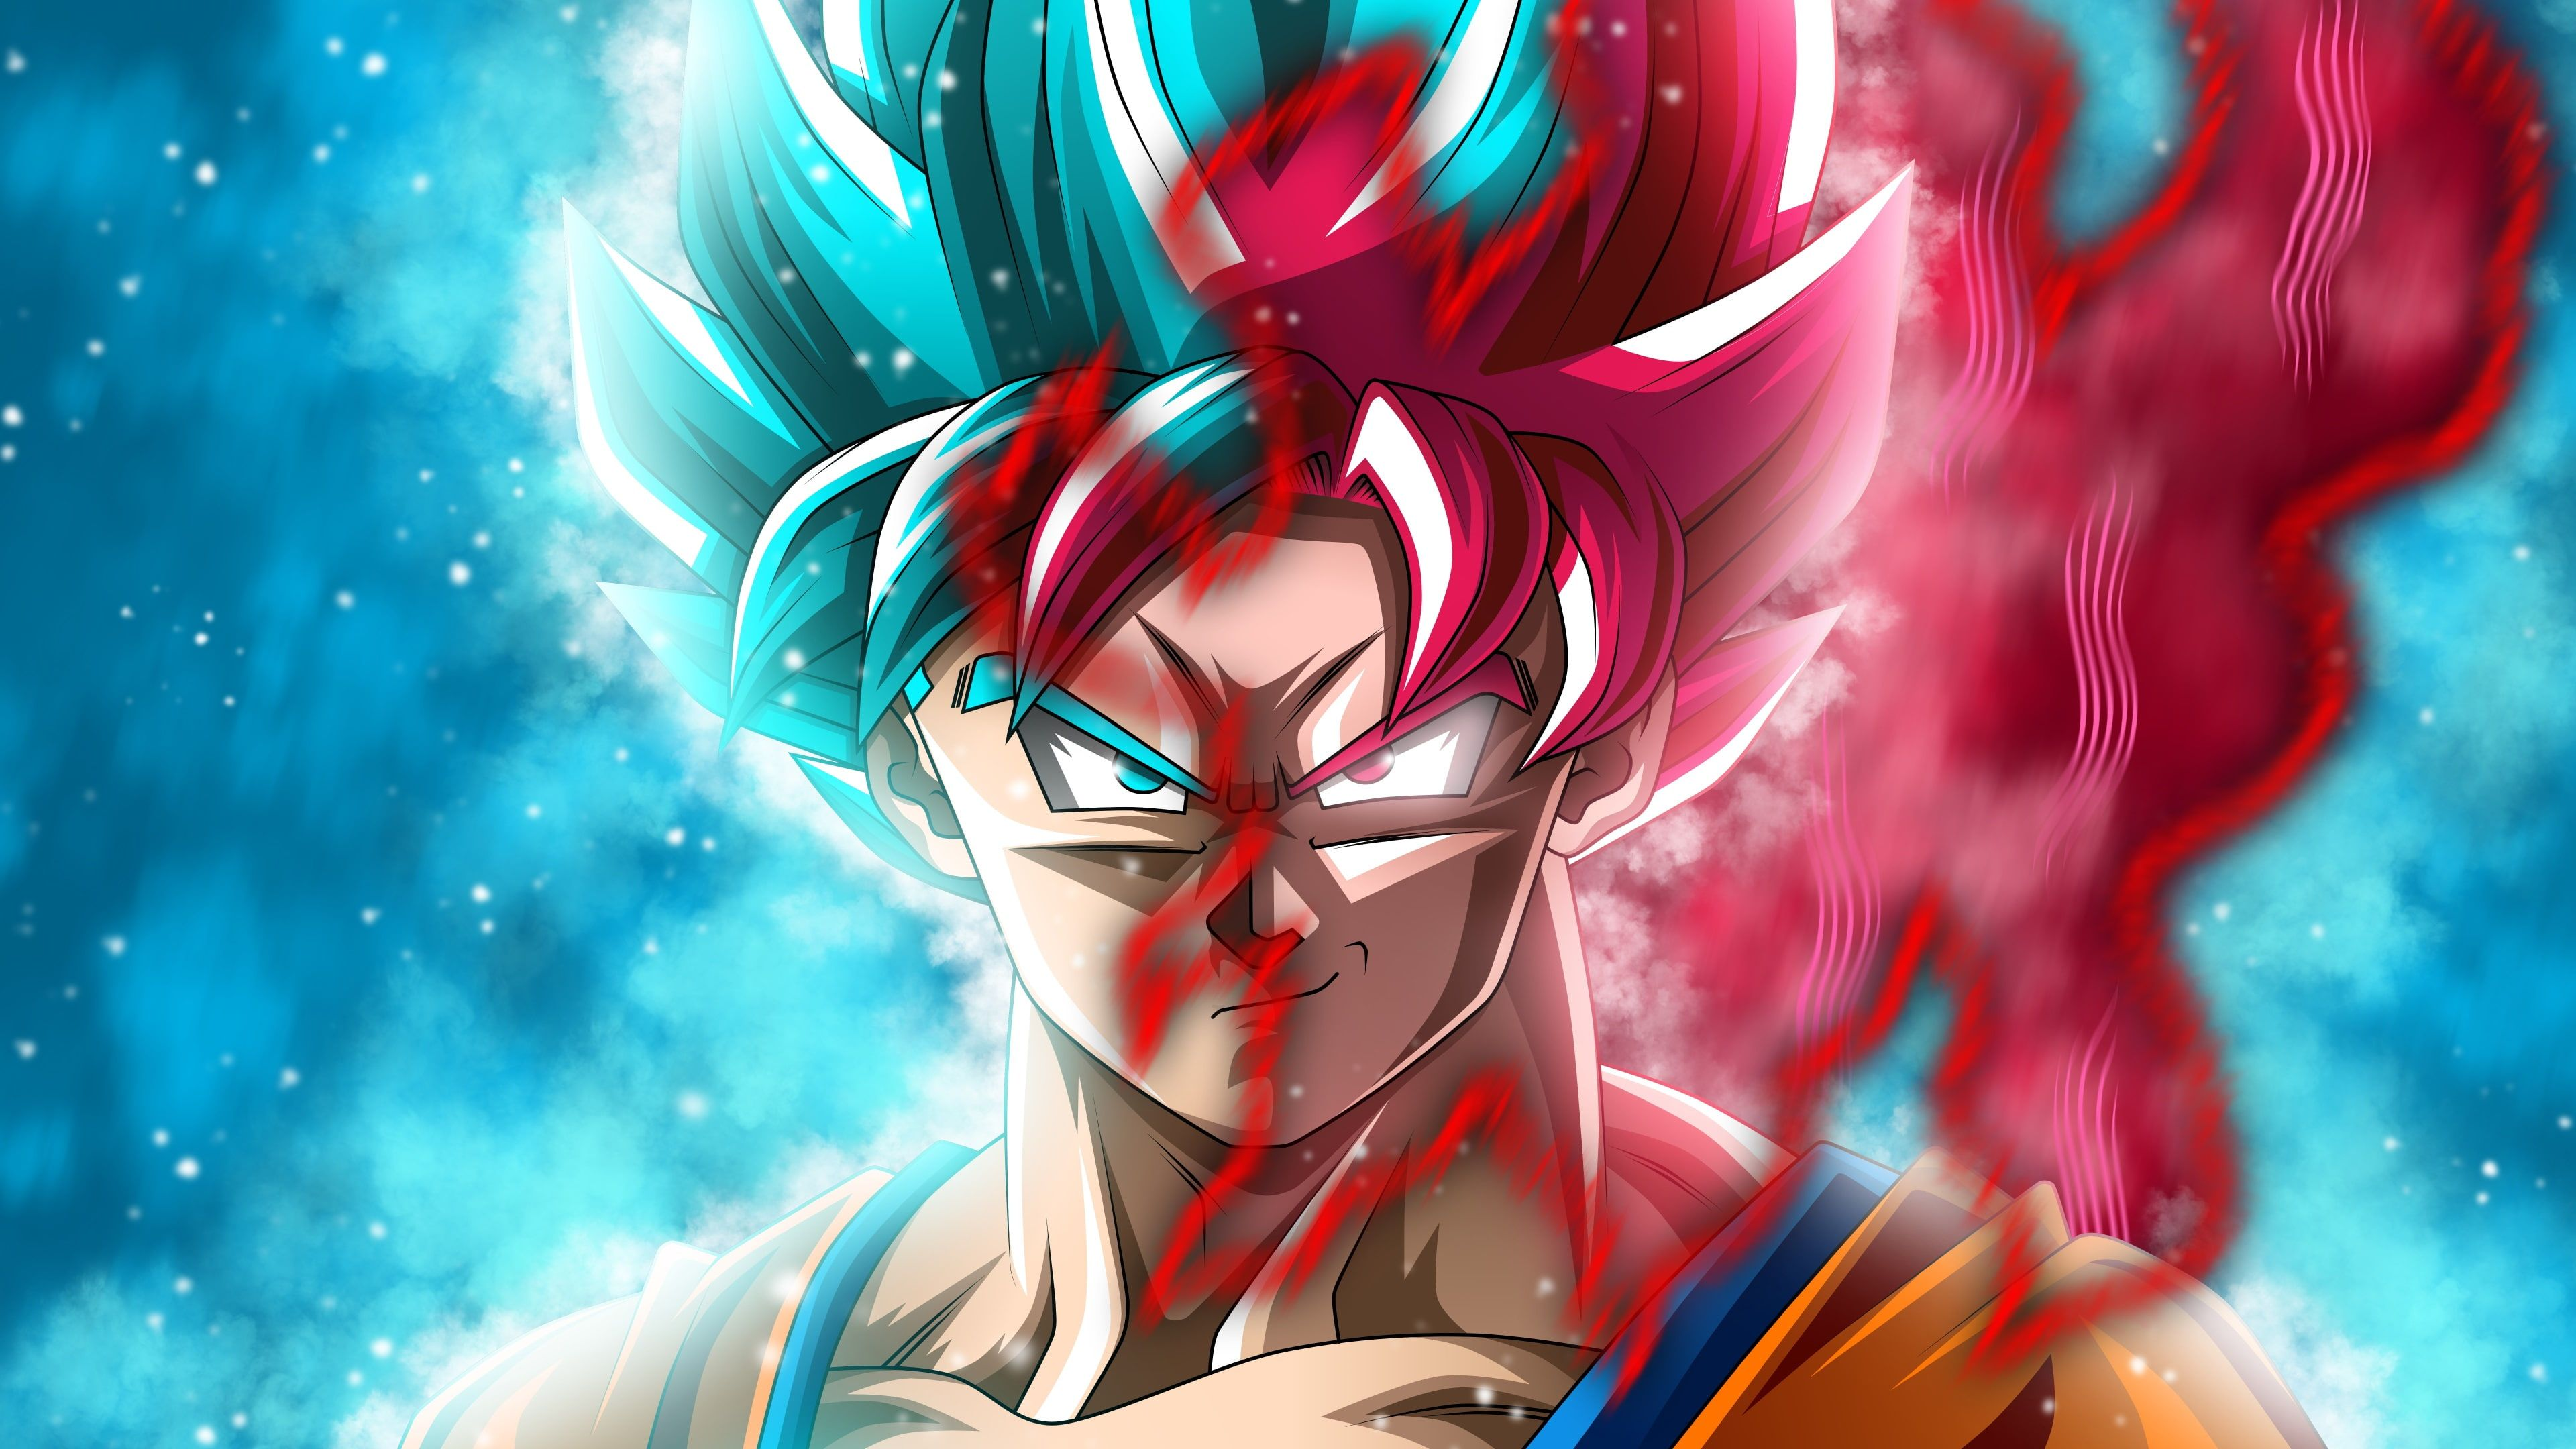 Dragon Ball Super 4k Desktop Backgrounds 4k Wallpaper Hdwallpaper Desktop Dragon Ball Wallpapers Dragon Ball Super Wallpapers Goku Wallpaper